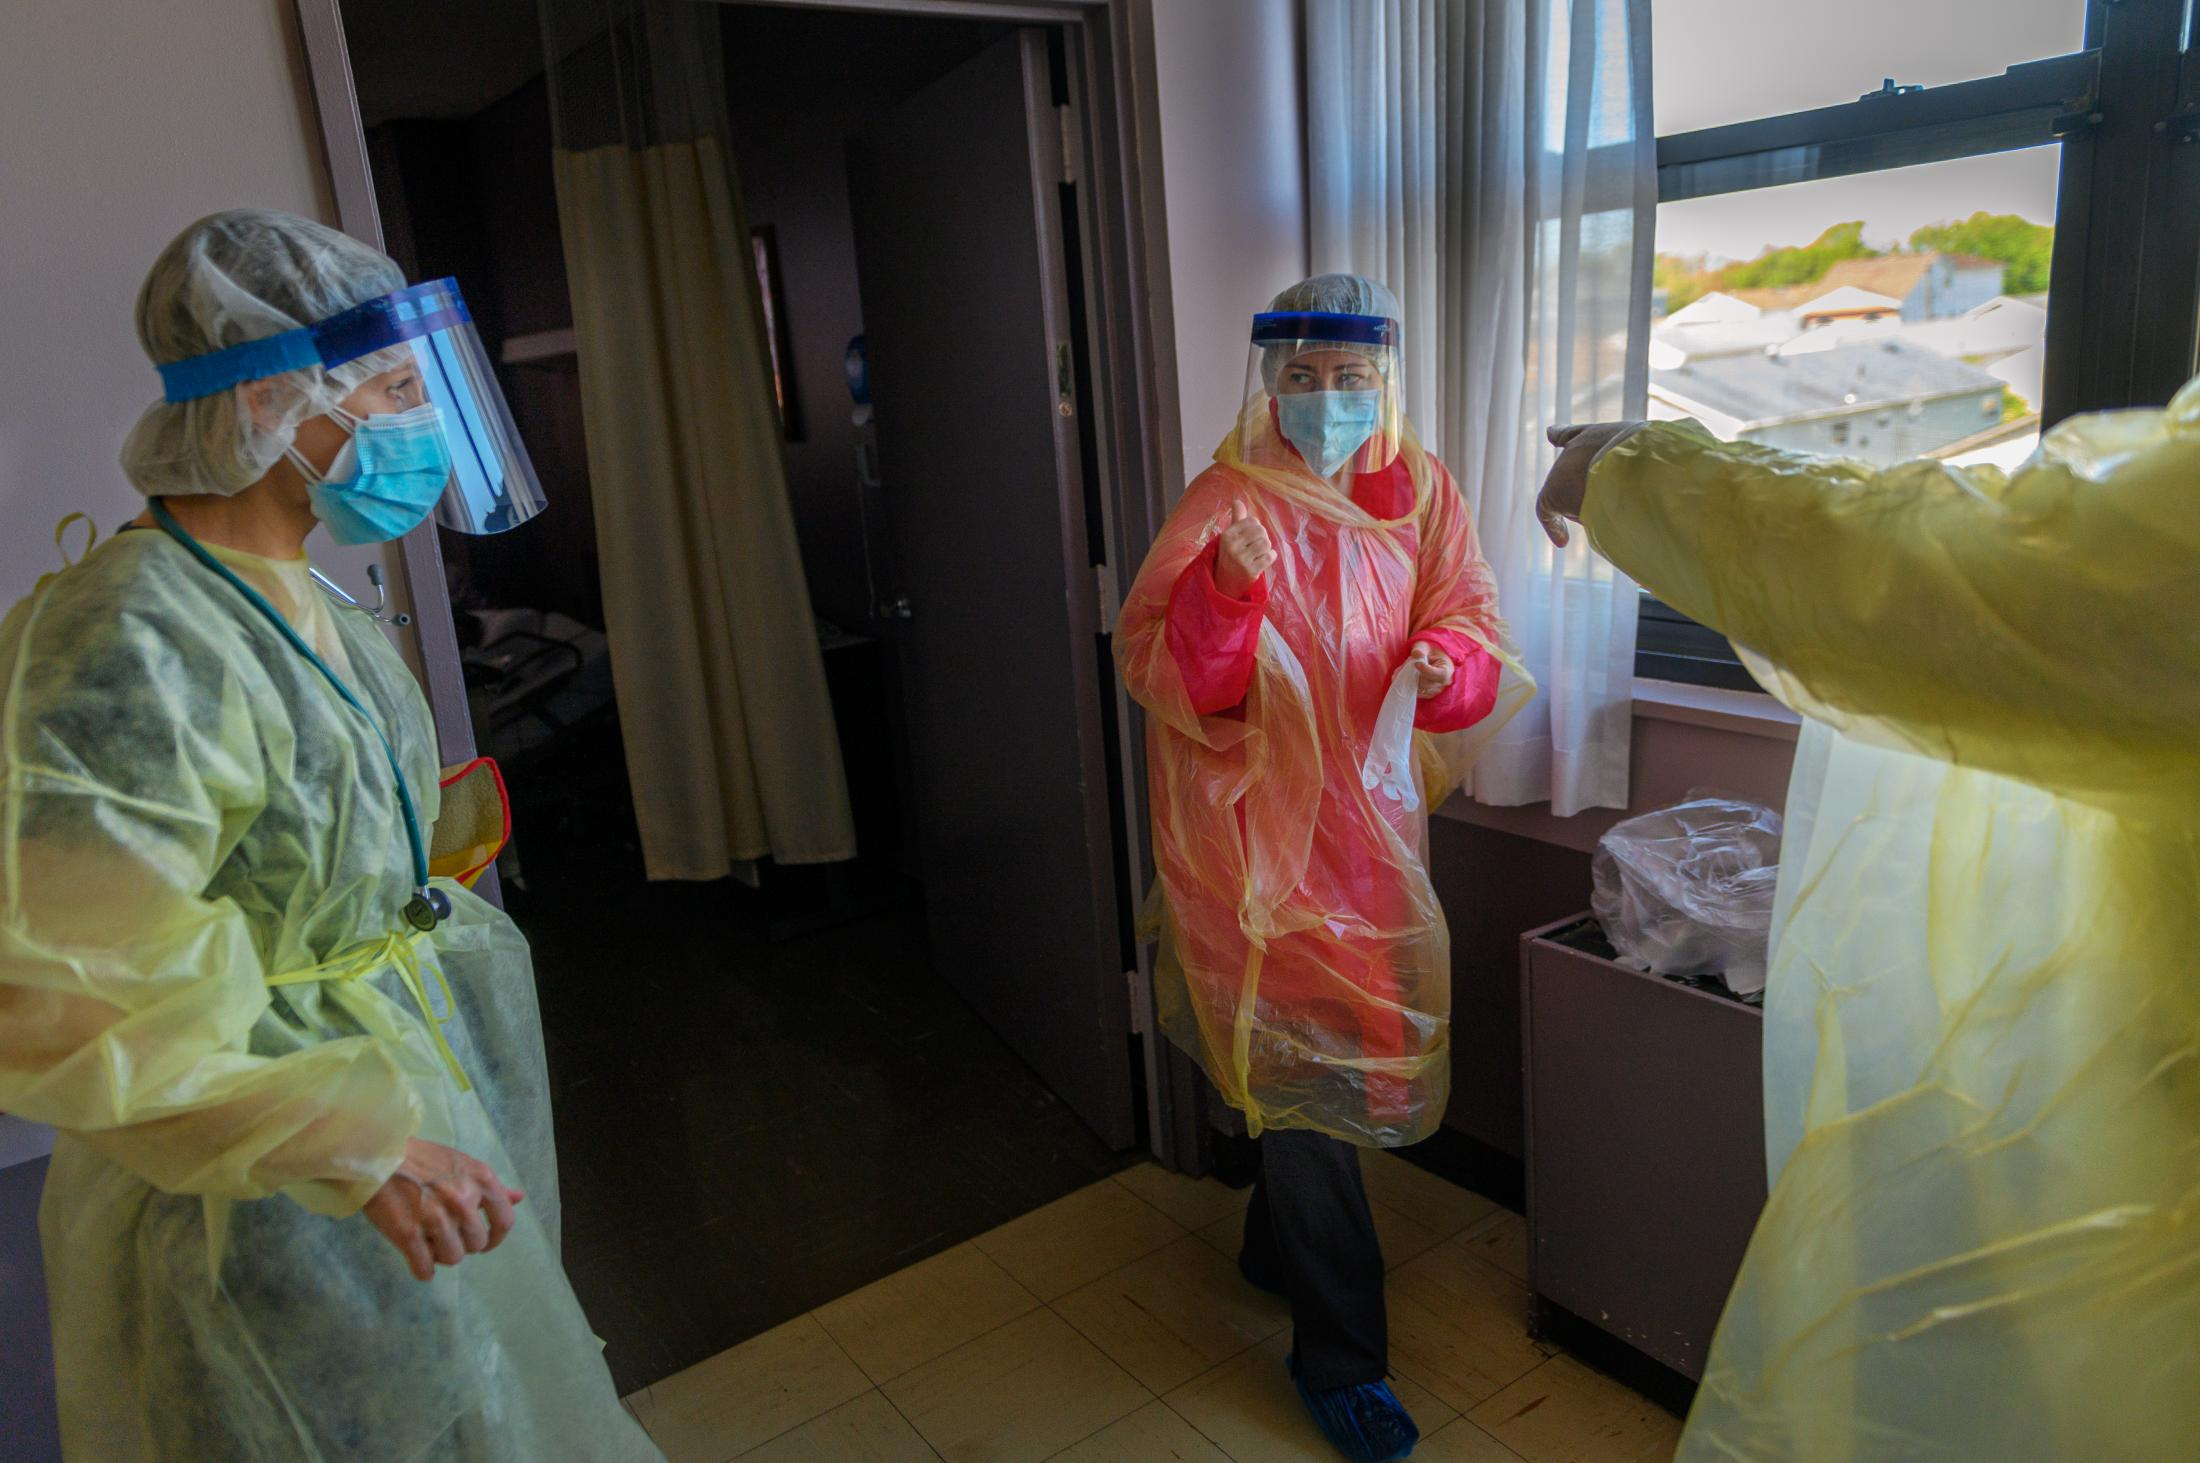 Jeanna and Lana put on extra level of PPE before entering a new patient's room for an evaluation session. The PPE protocol has been a work in progress as the facility has to improvise in order to protect their staff.